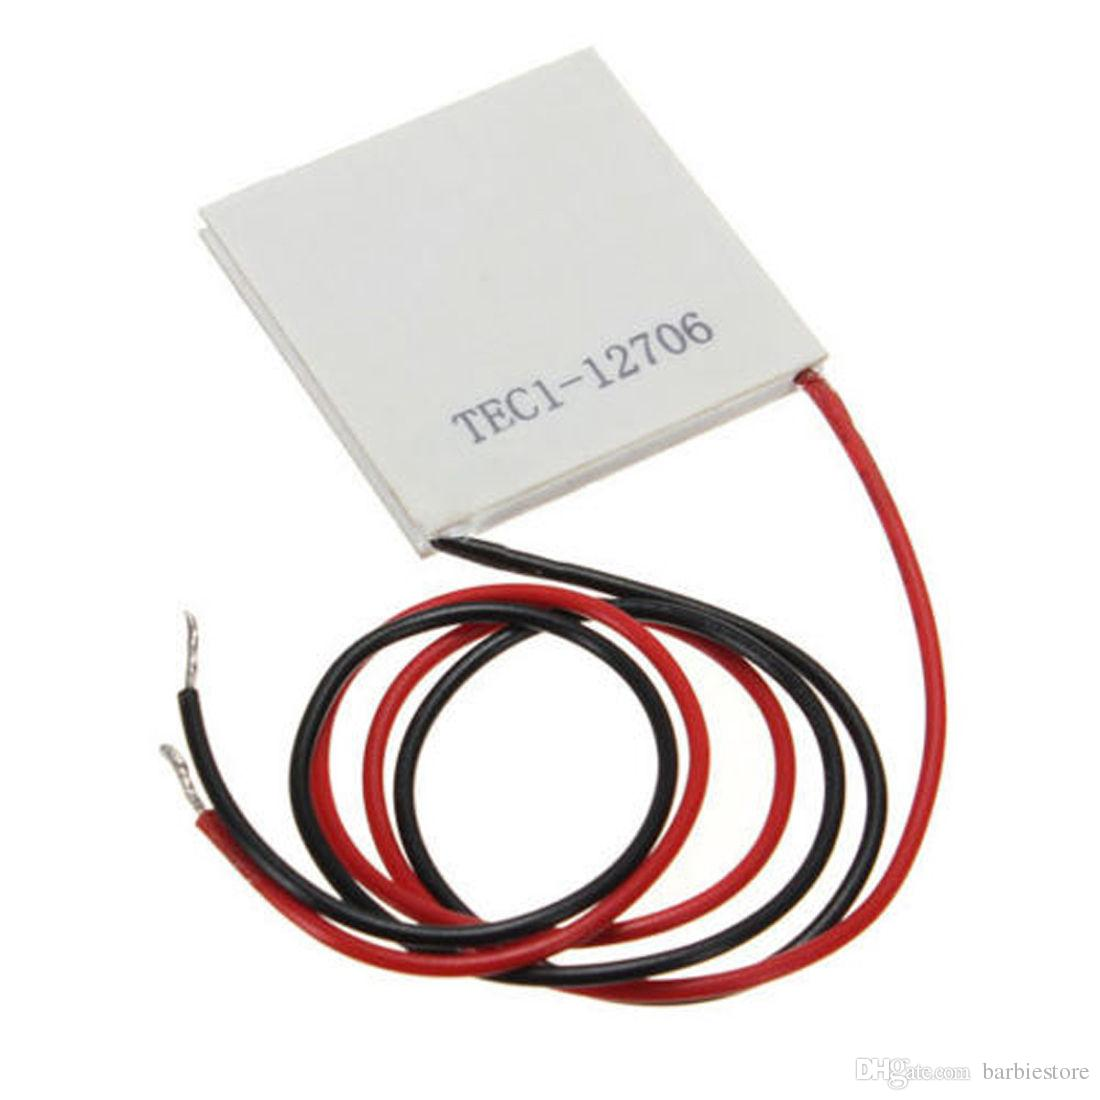 Tec1-12706 thermoelectric peltier cooler (12v, 60w)